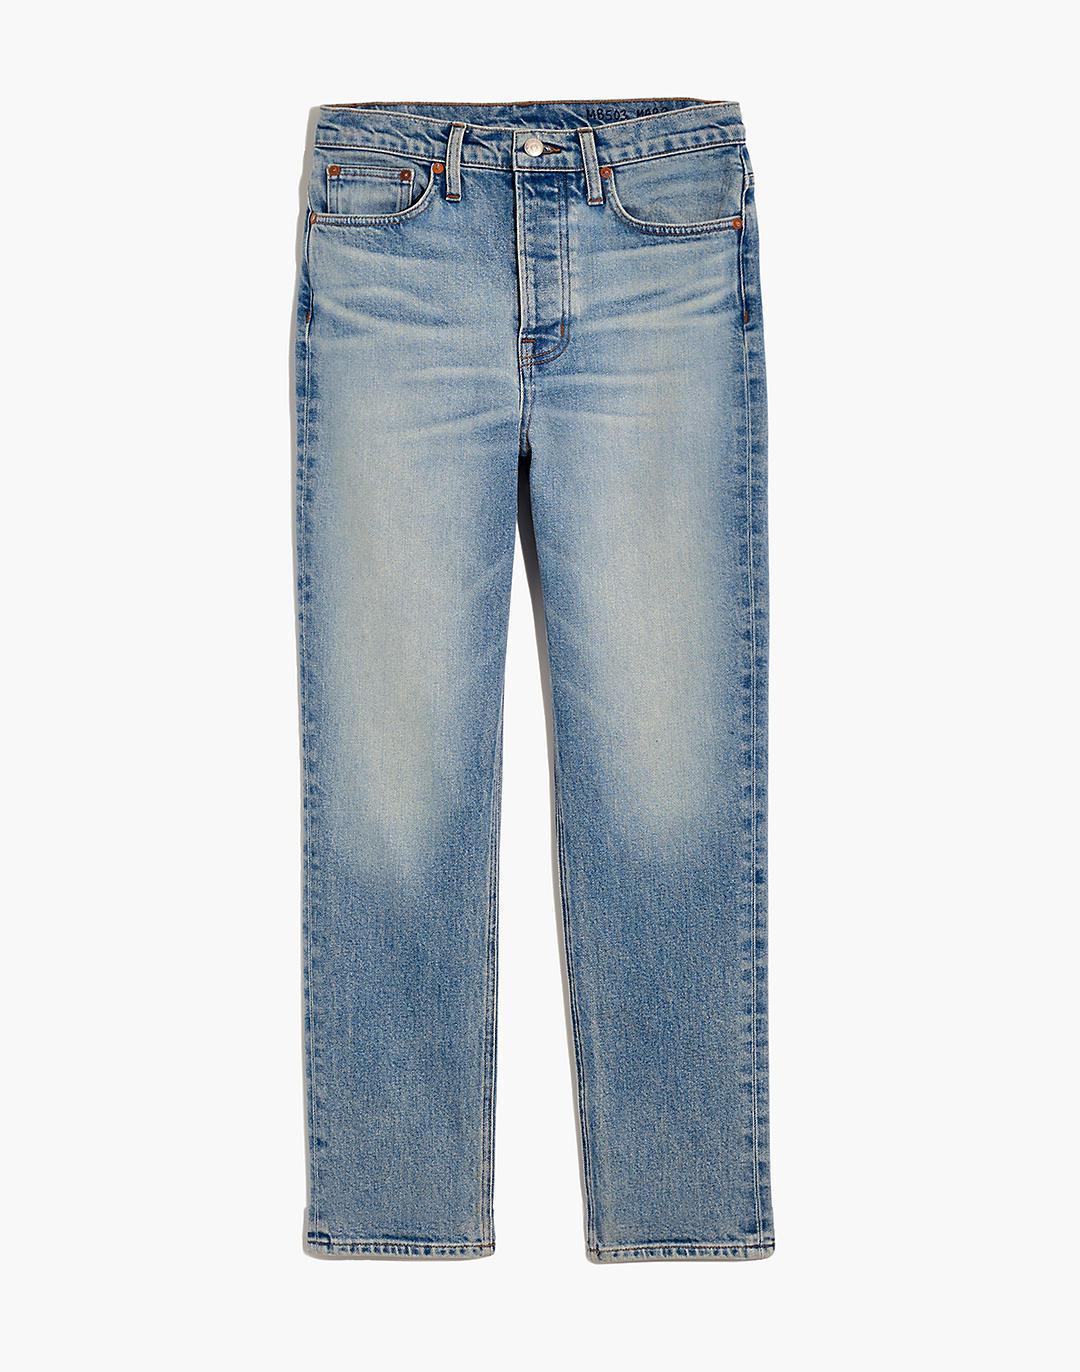 Rivet & Thread Perfect Vintage Jeans in Ryerson Wash 4